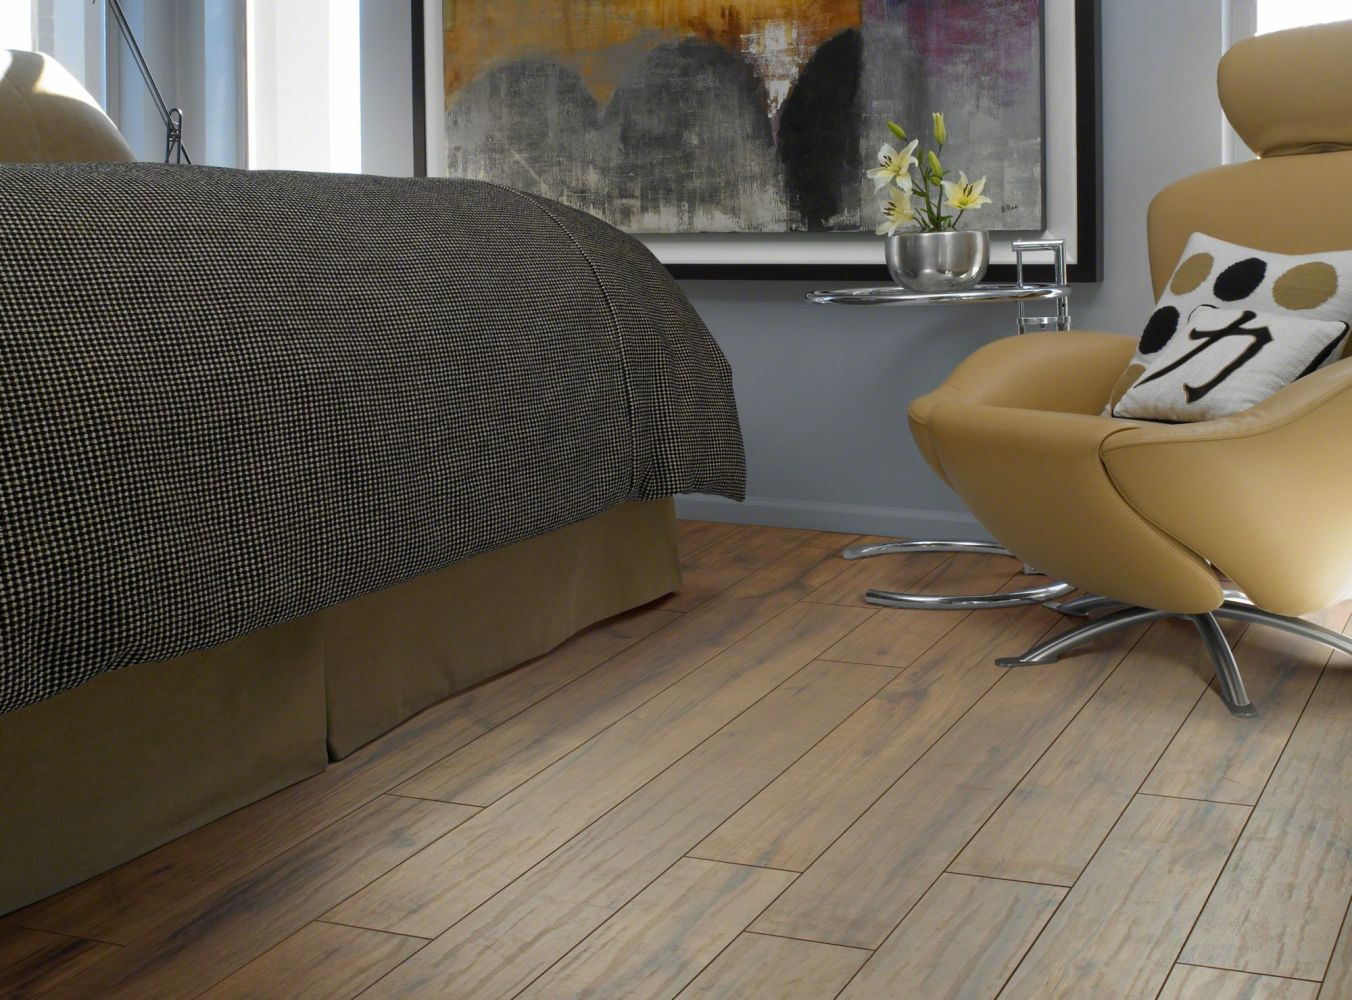 Shaw Floors Home Fn Gold Laminate Mackinaw Corduroy Rd Hckry 00426_HL247